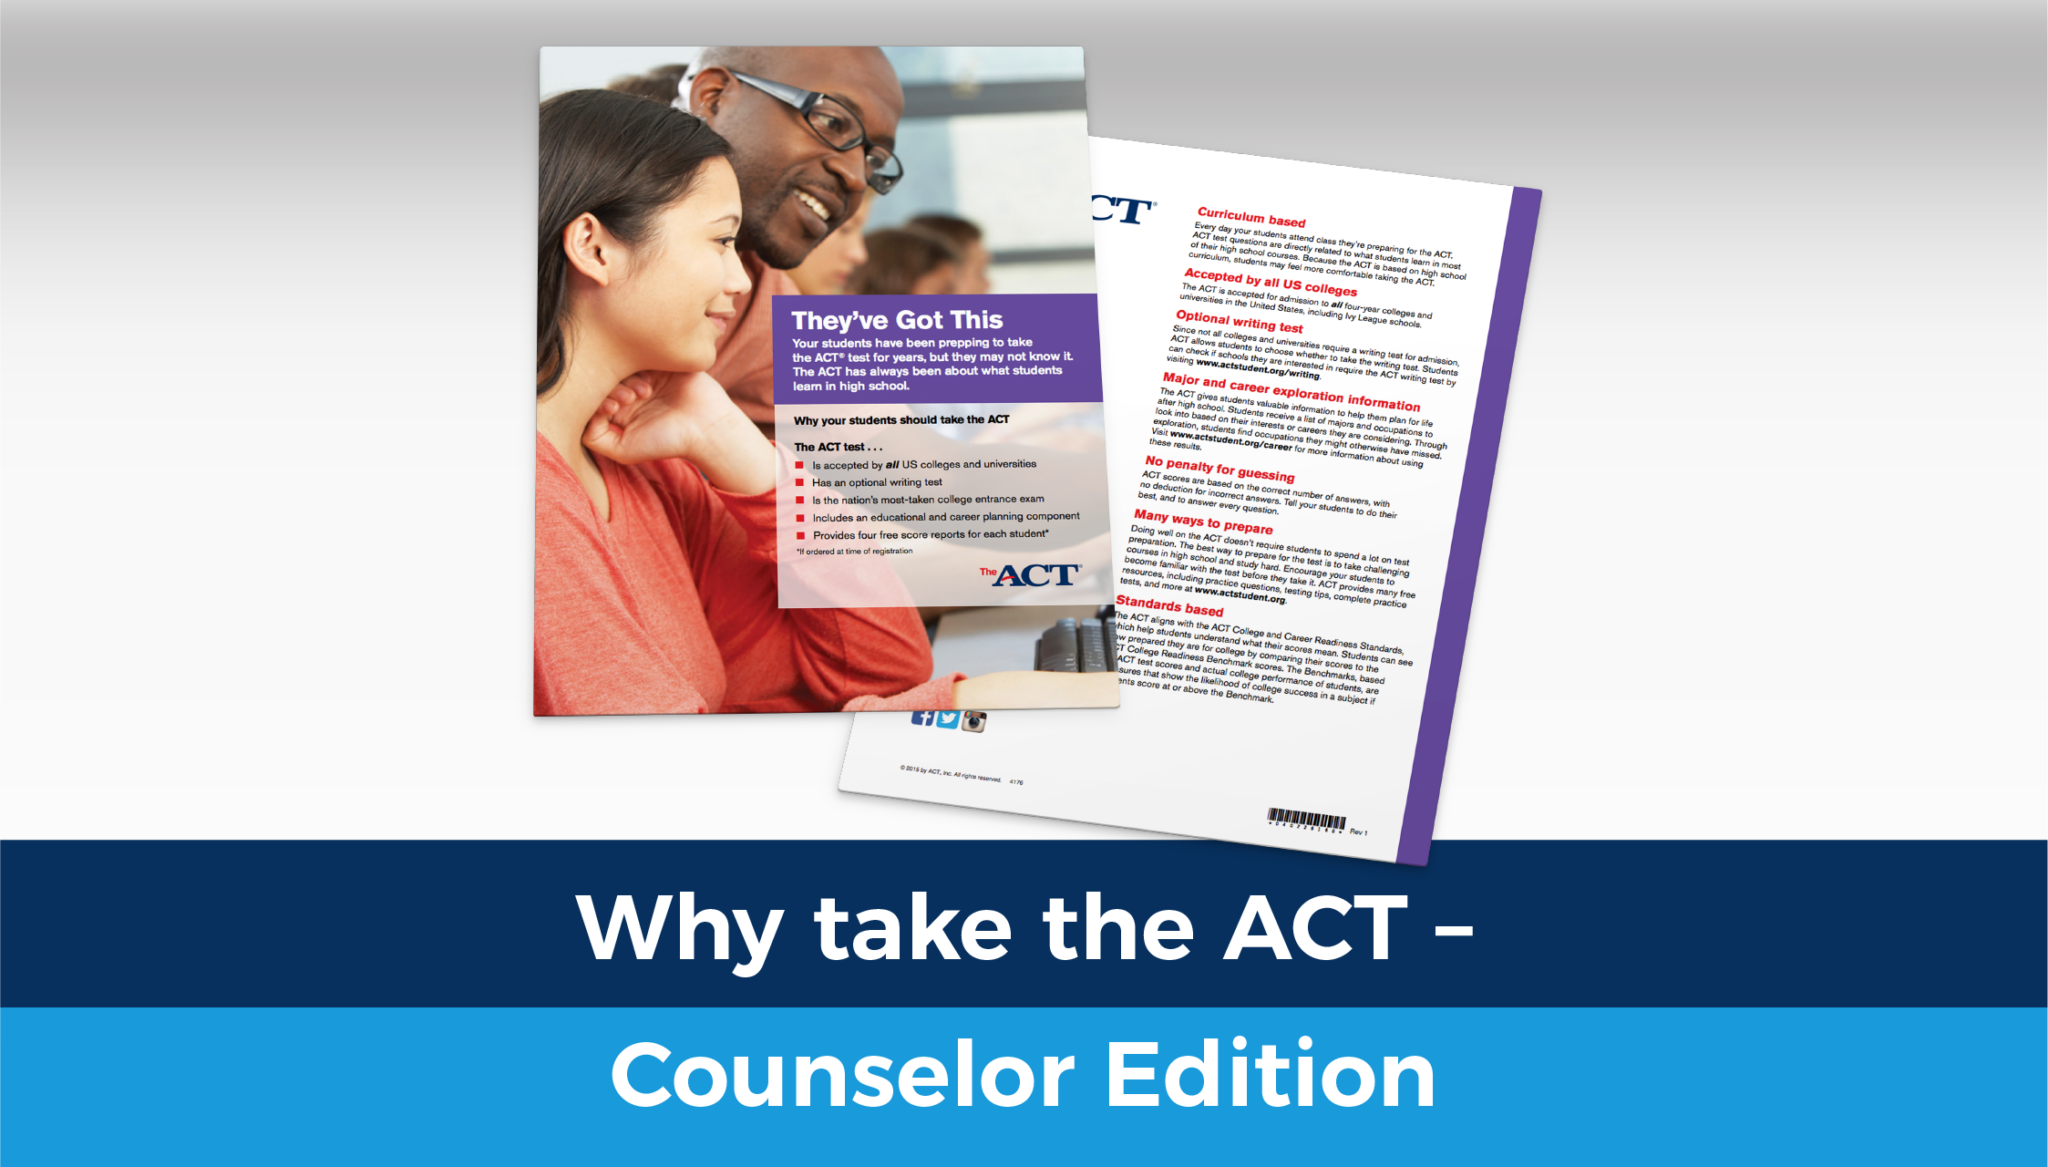 Why take the ACT - Counselor Edition